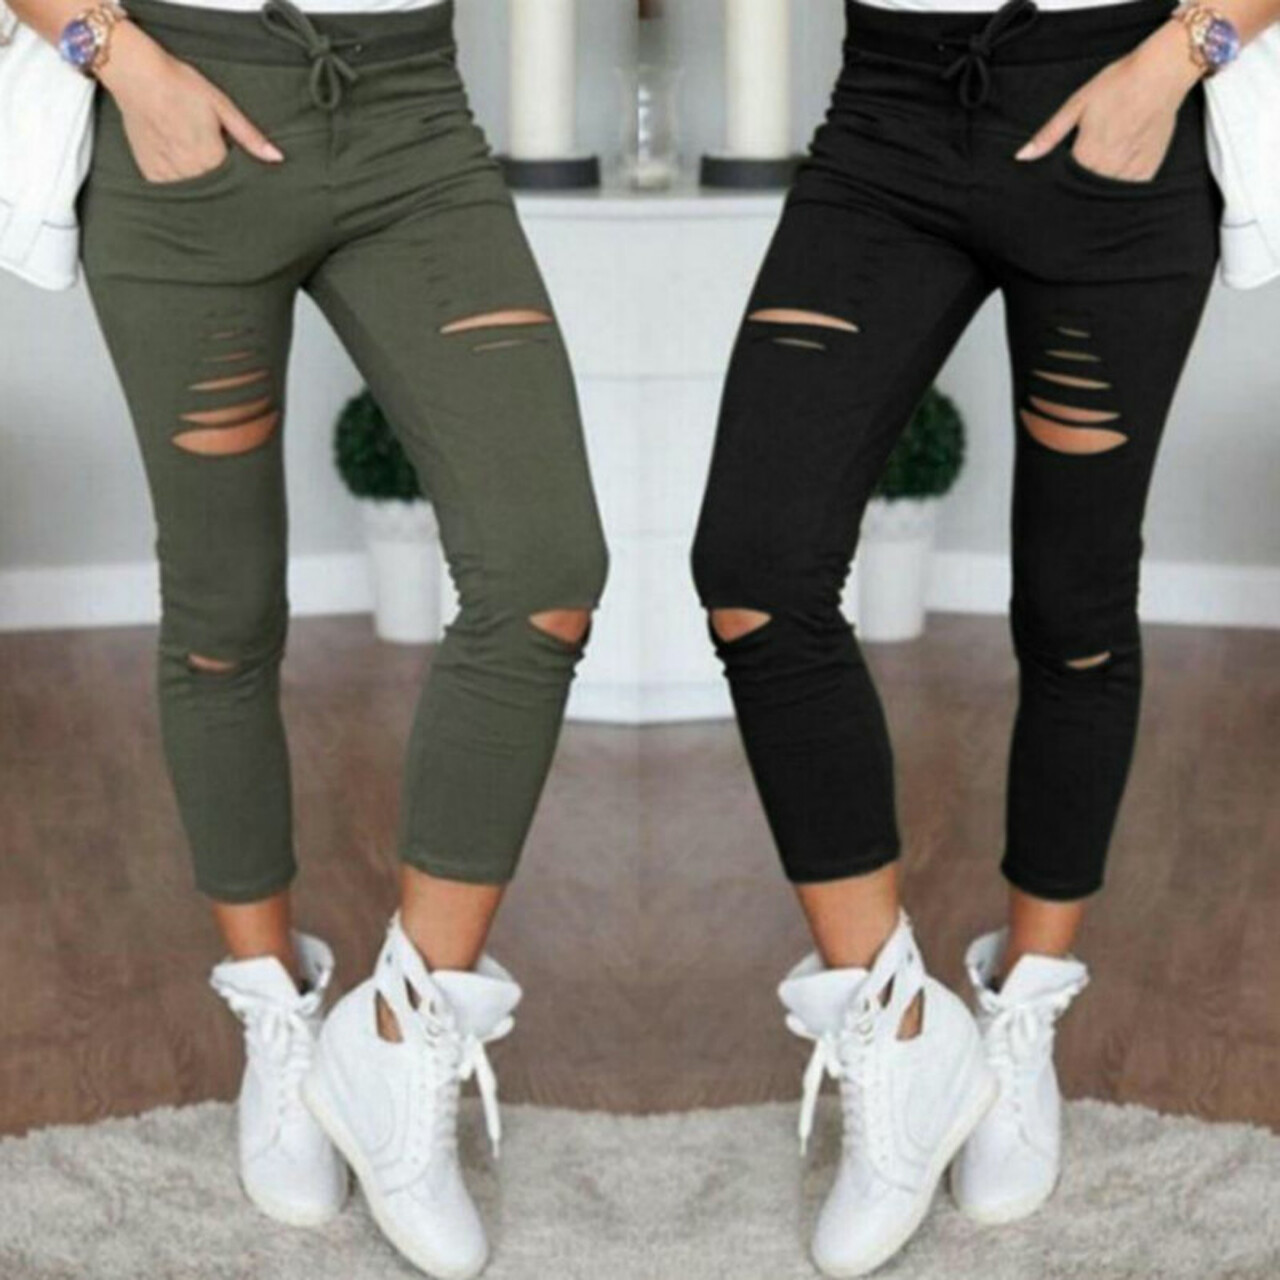 ac2863bbbd 2018 Summer Skinny Jeans Women Denim Pants Holes Destroyed Knee Pencil  Pants Casual Trousers Black White ...